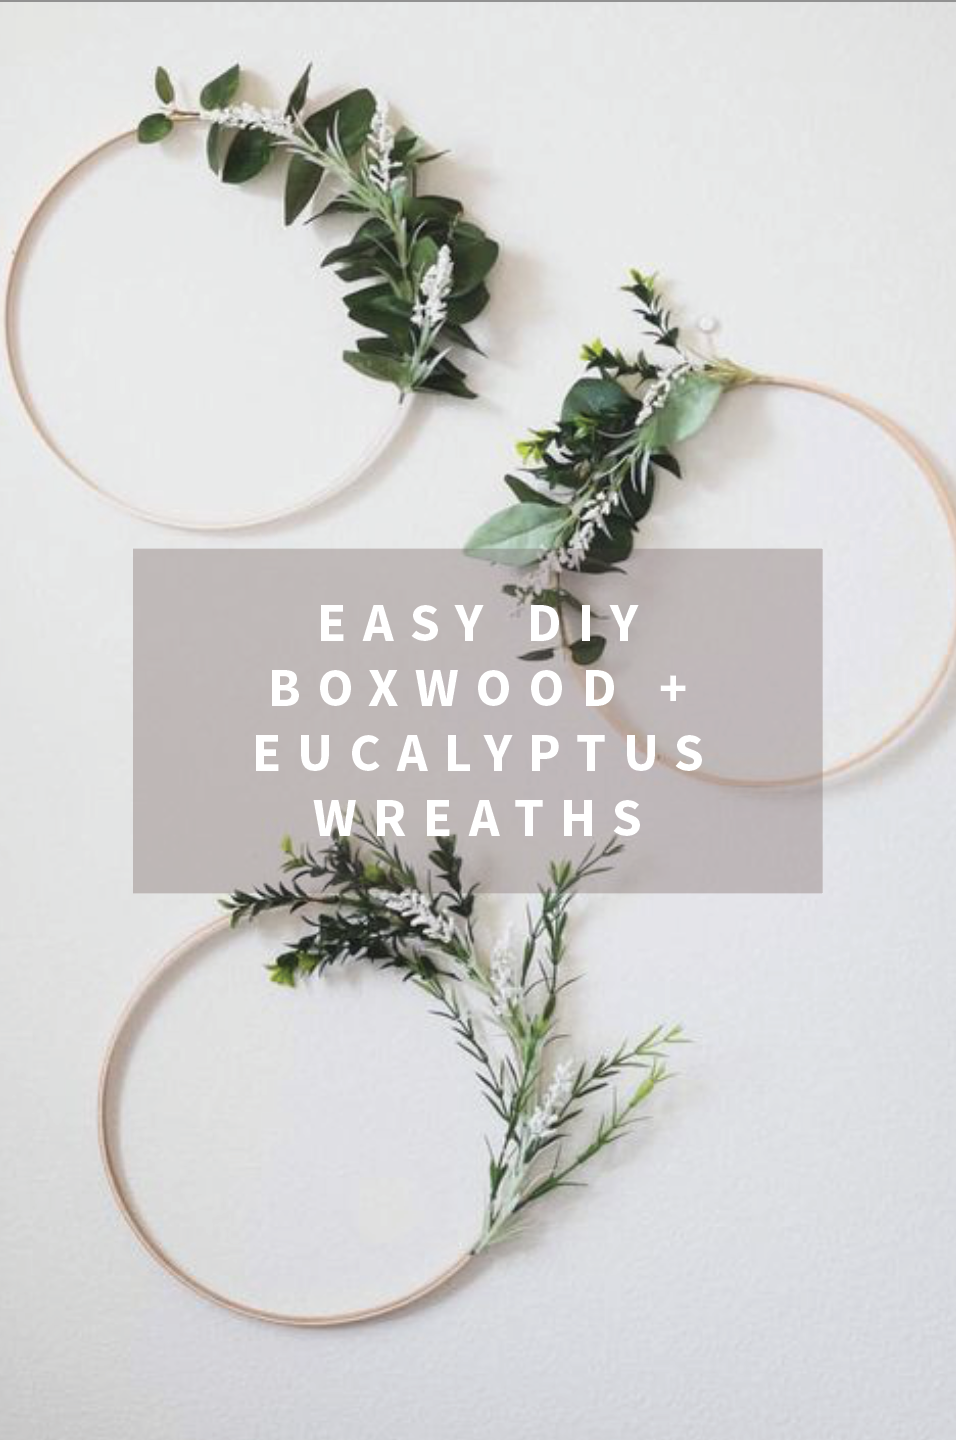 Easy DIY Boxwood and Eucalyptus Embroidery Hoop Wreaths.png